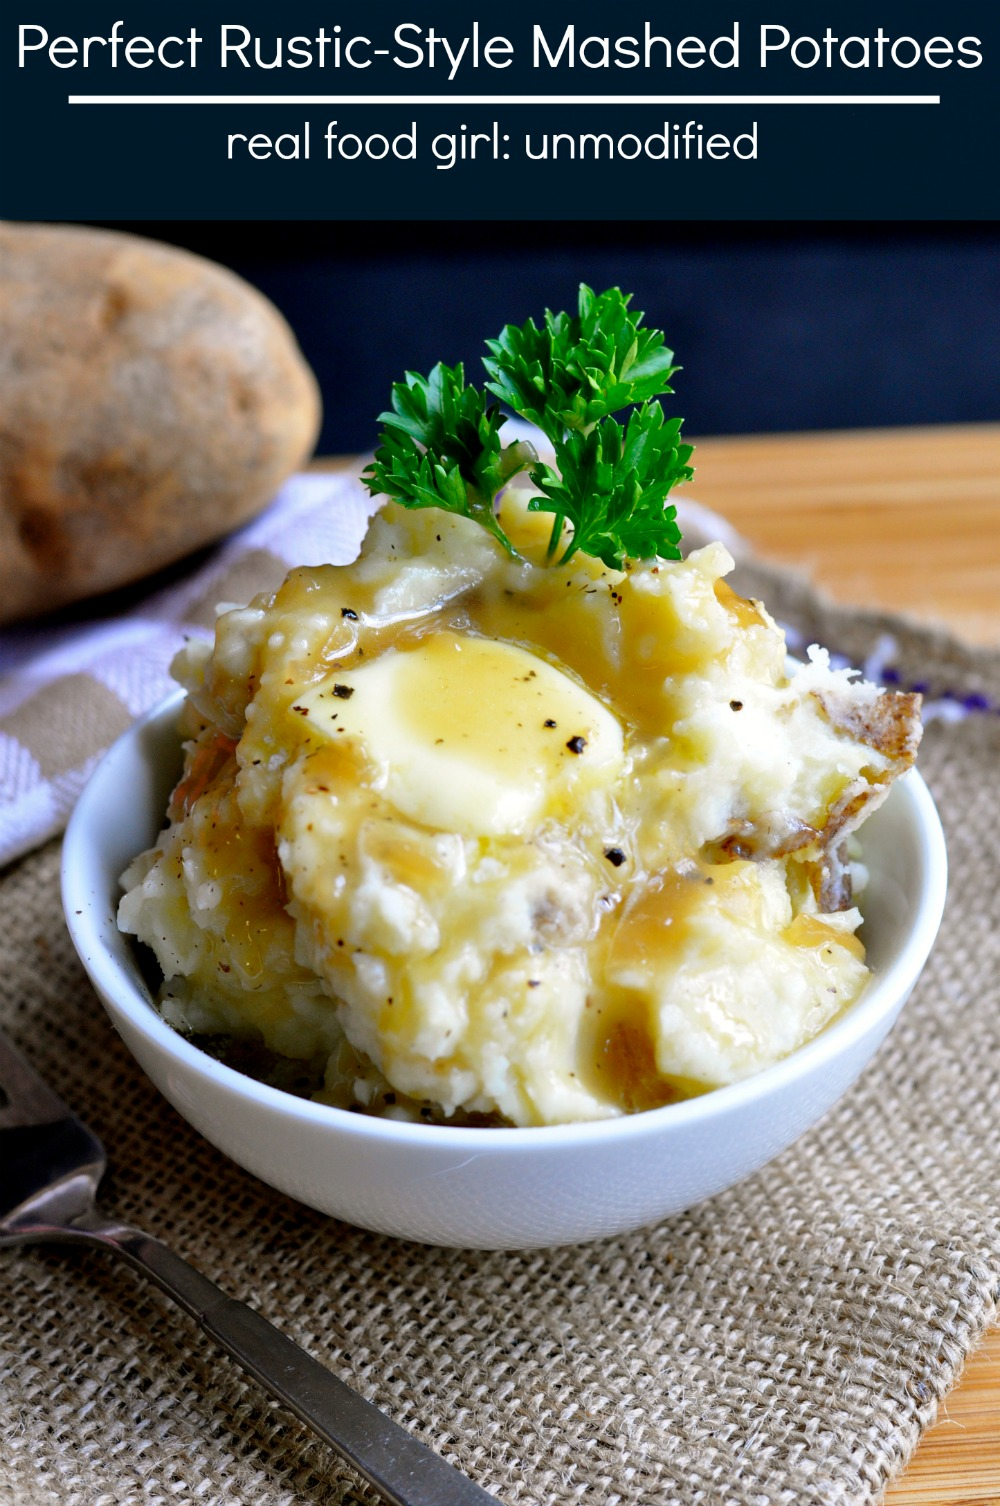 Perfect Mashed Potatoes by Real Food Girl Unmodified